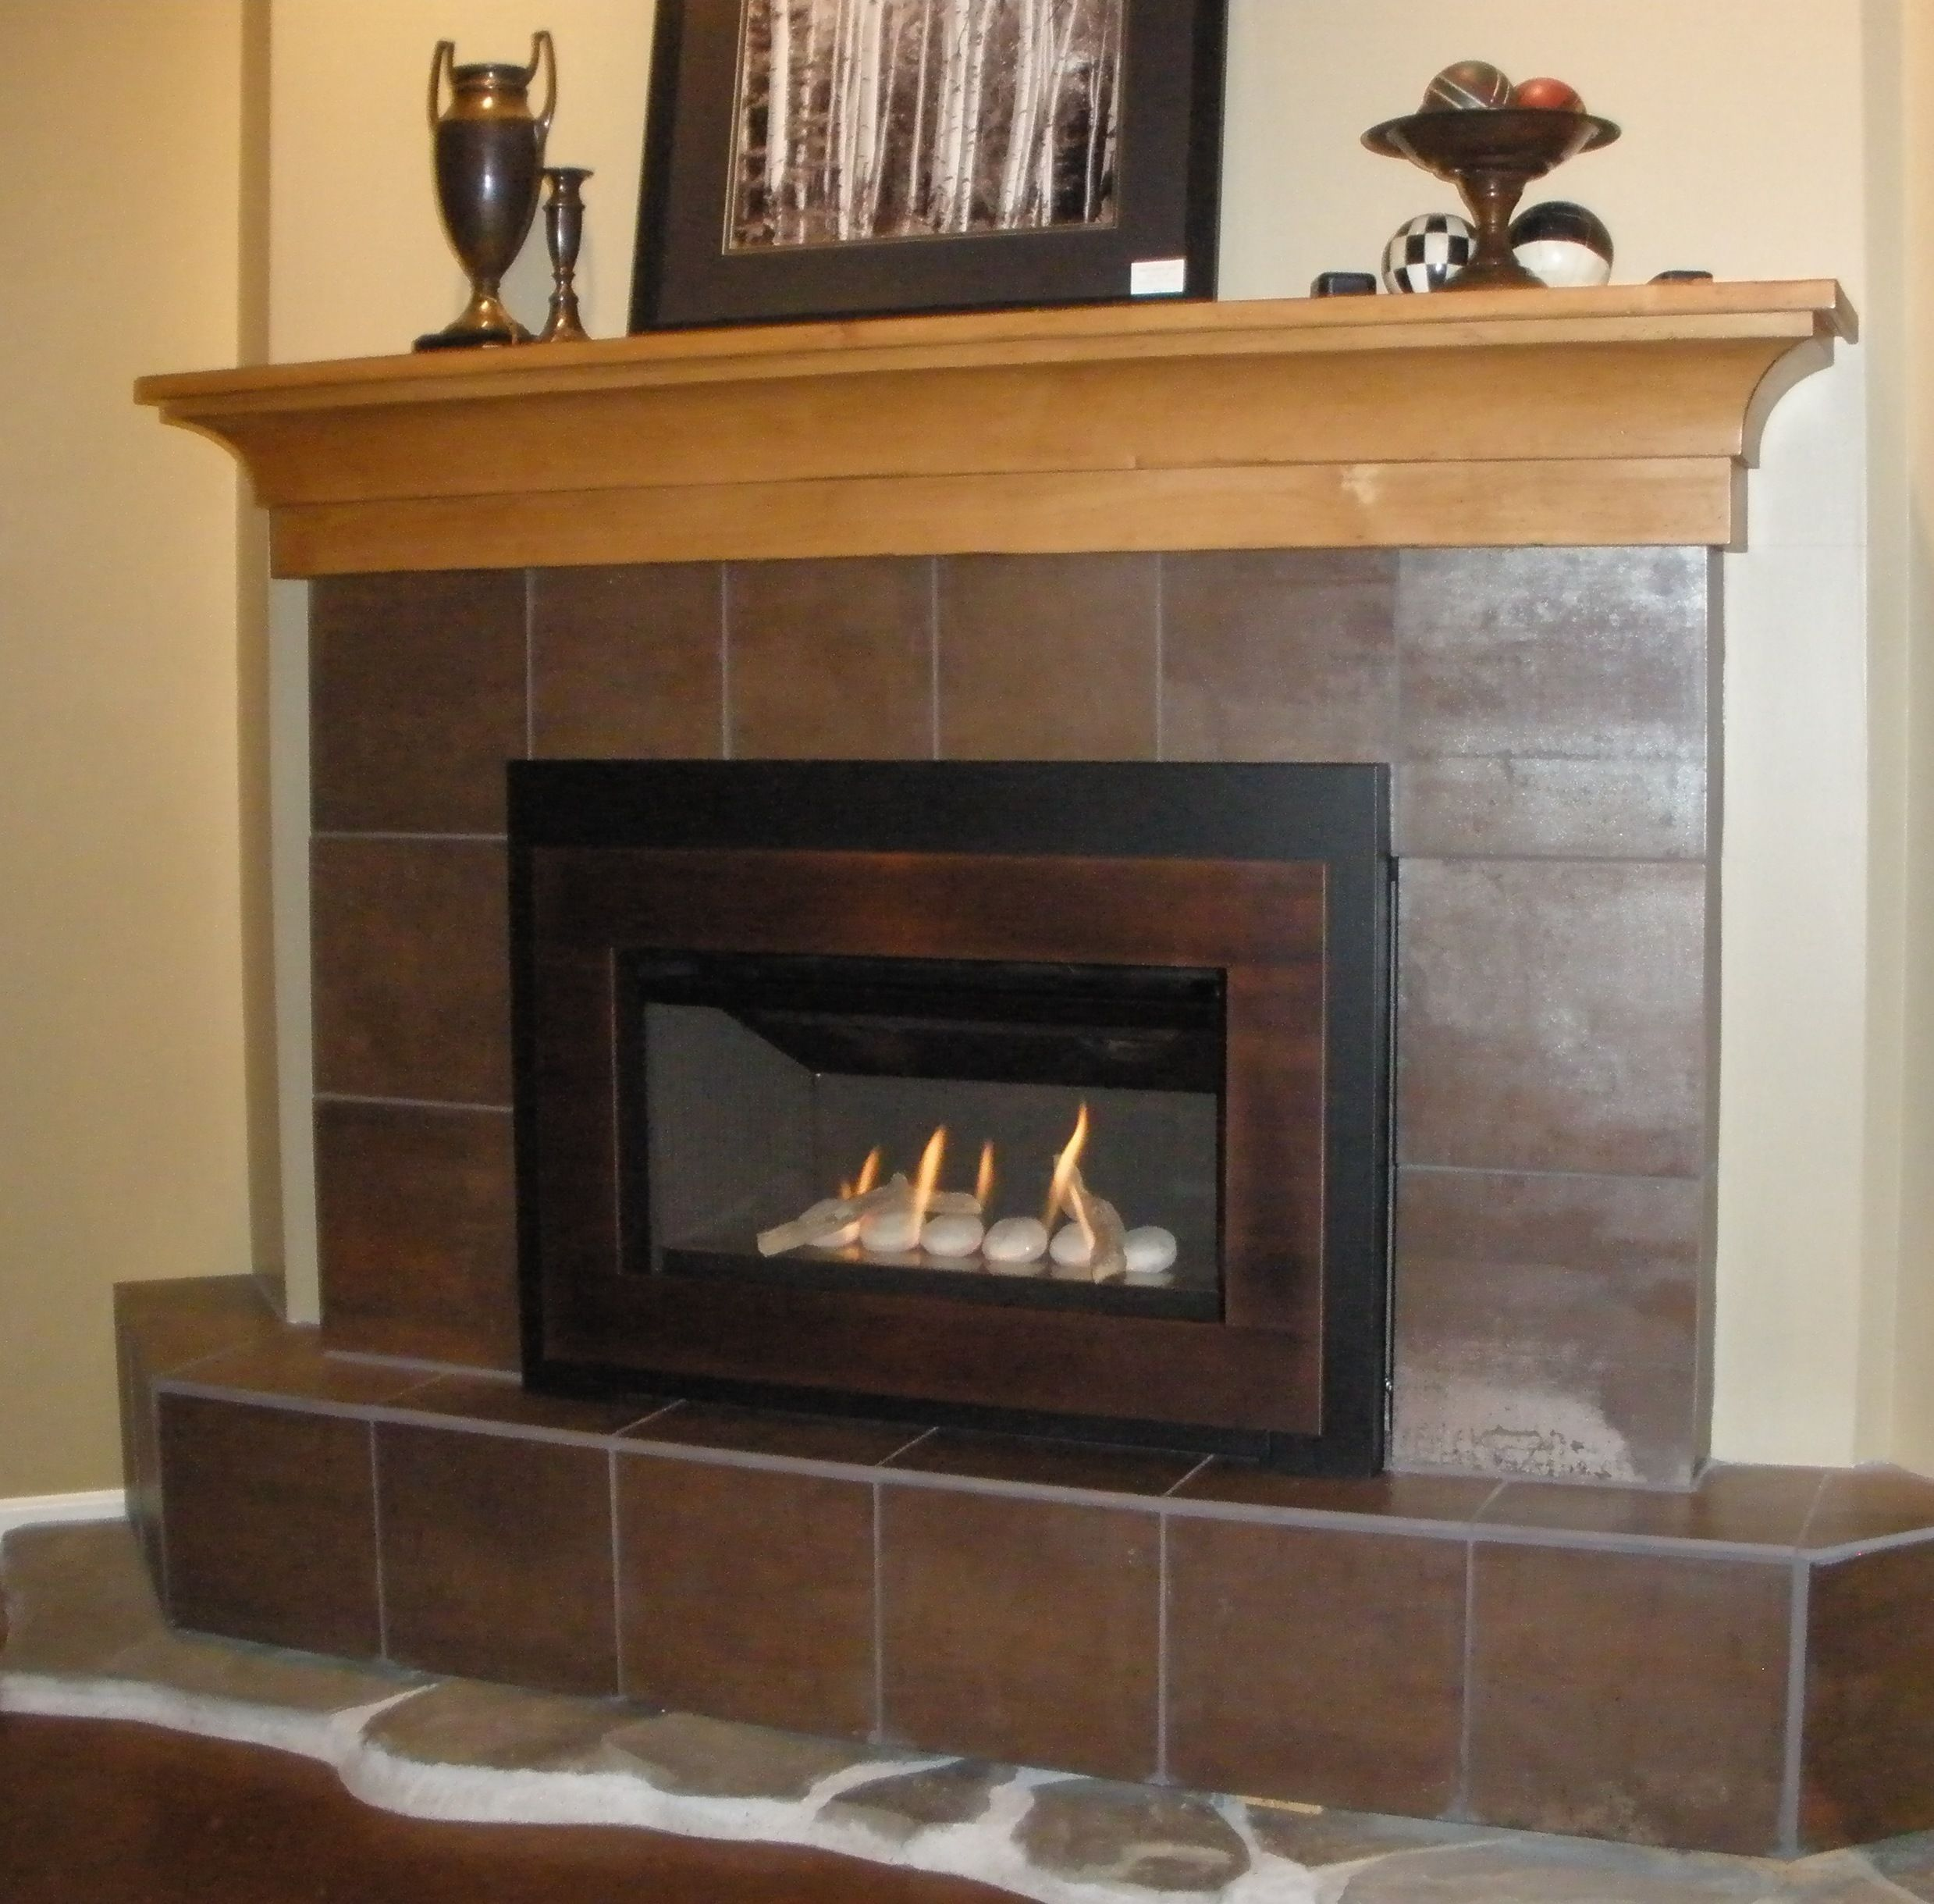 Indoor Gas Fireplace Insert Awesome Pin On Valor Radiant Gas Fireplaces Midwest Dealer